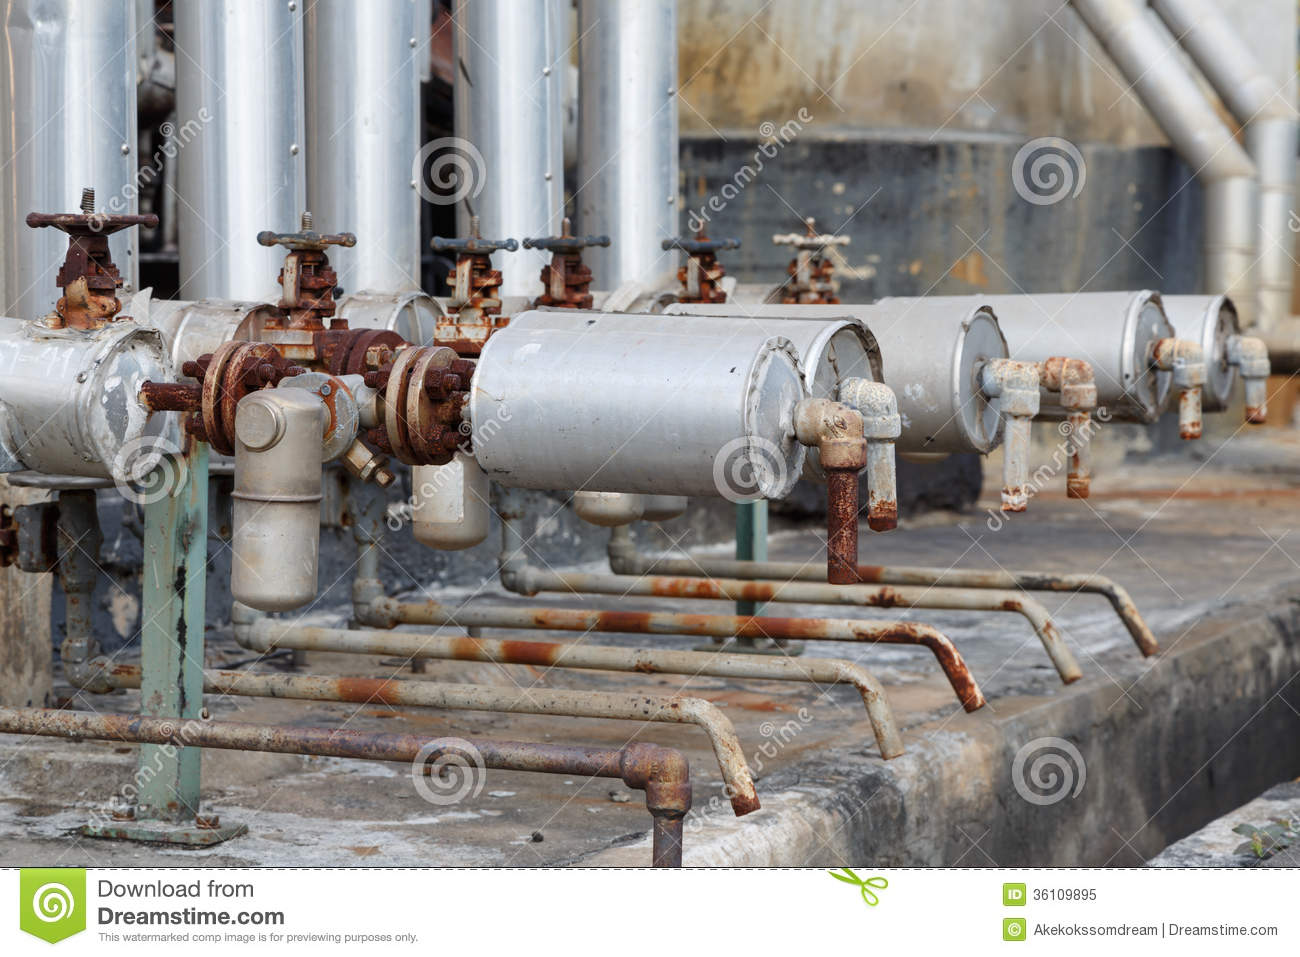 Royalty Free Stock Photo Close Up Old Steam Trap Valve Pipe Connection Industrial Plant Image36109895 on broken power lines